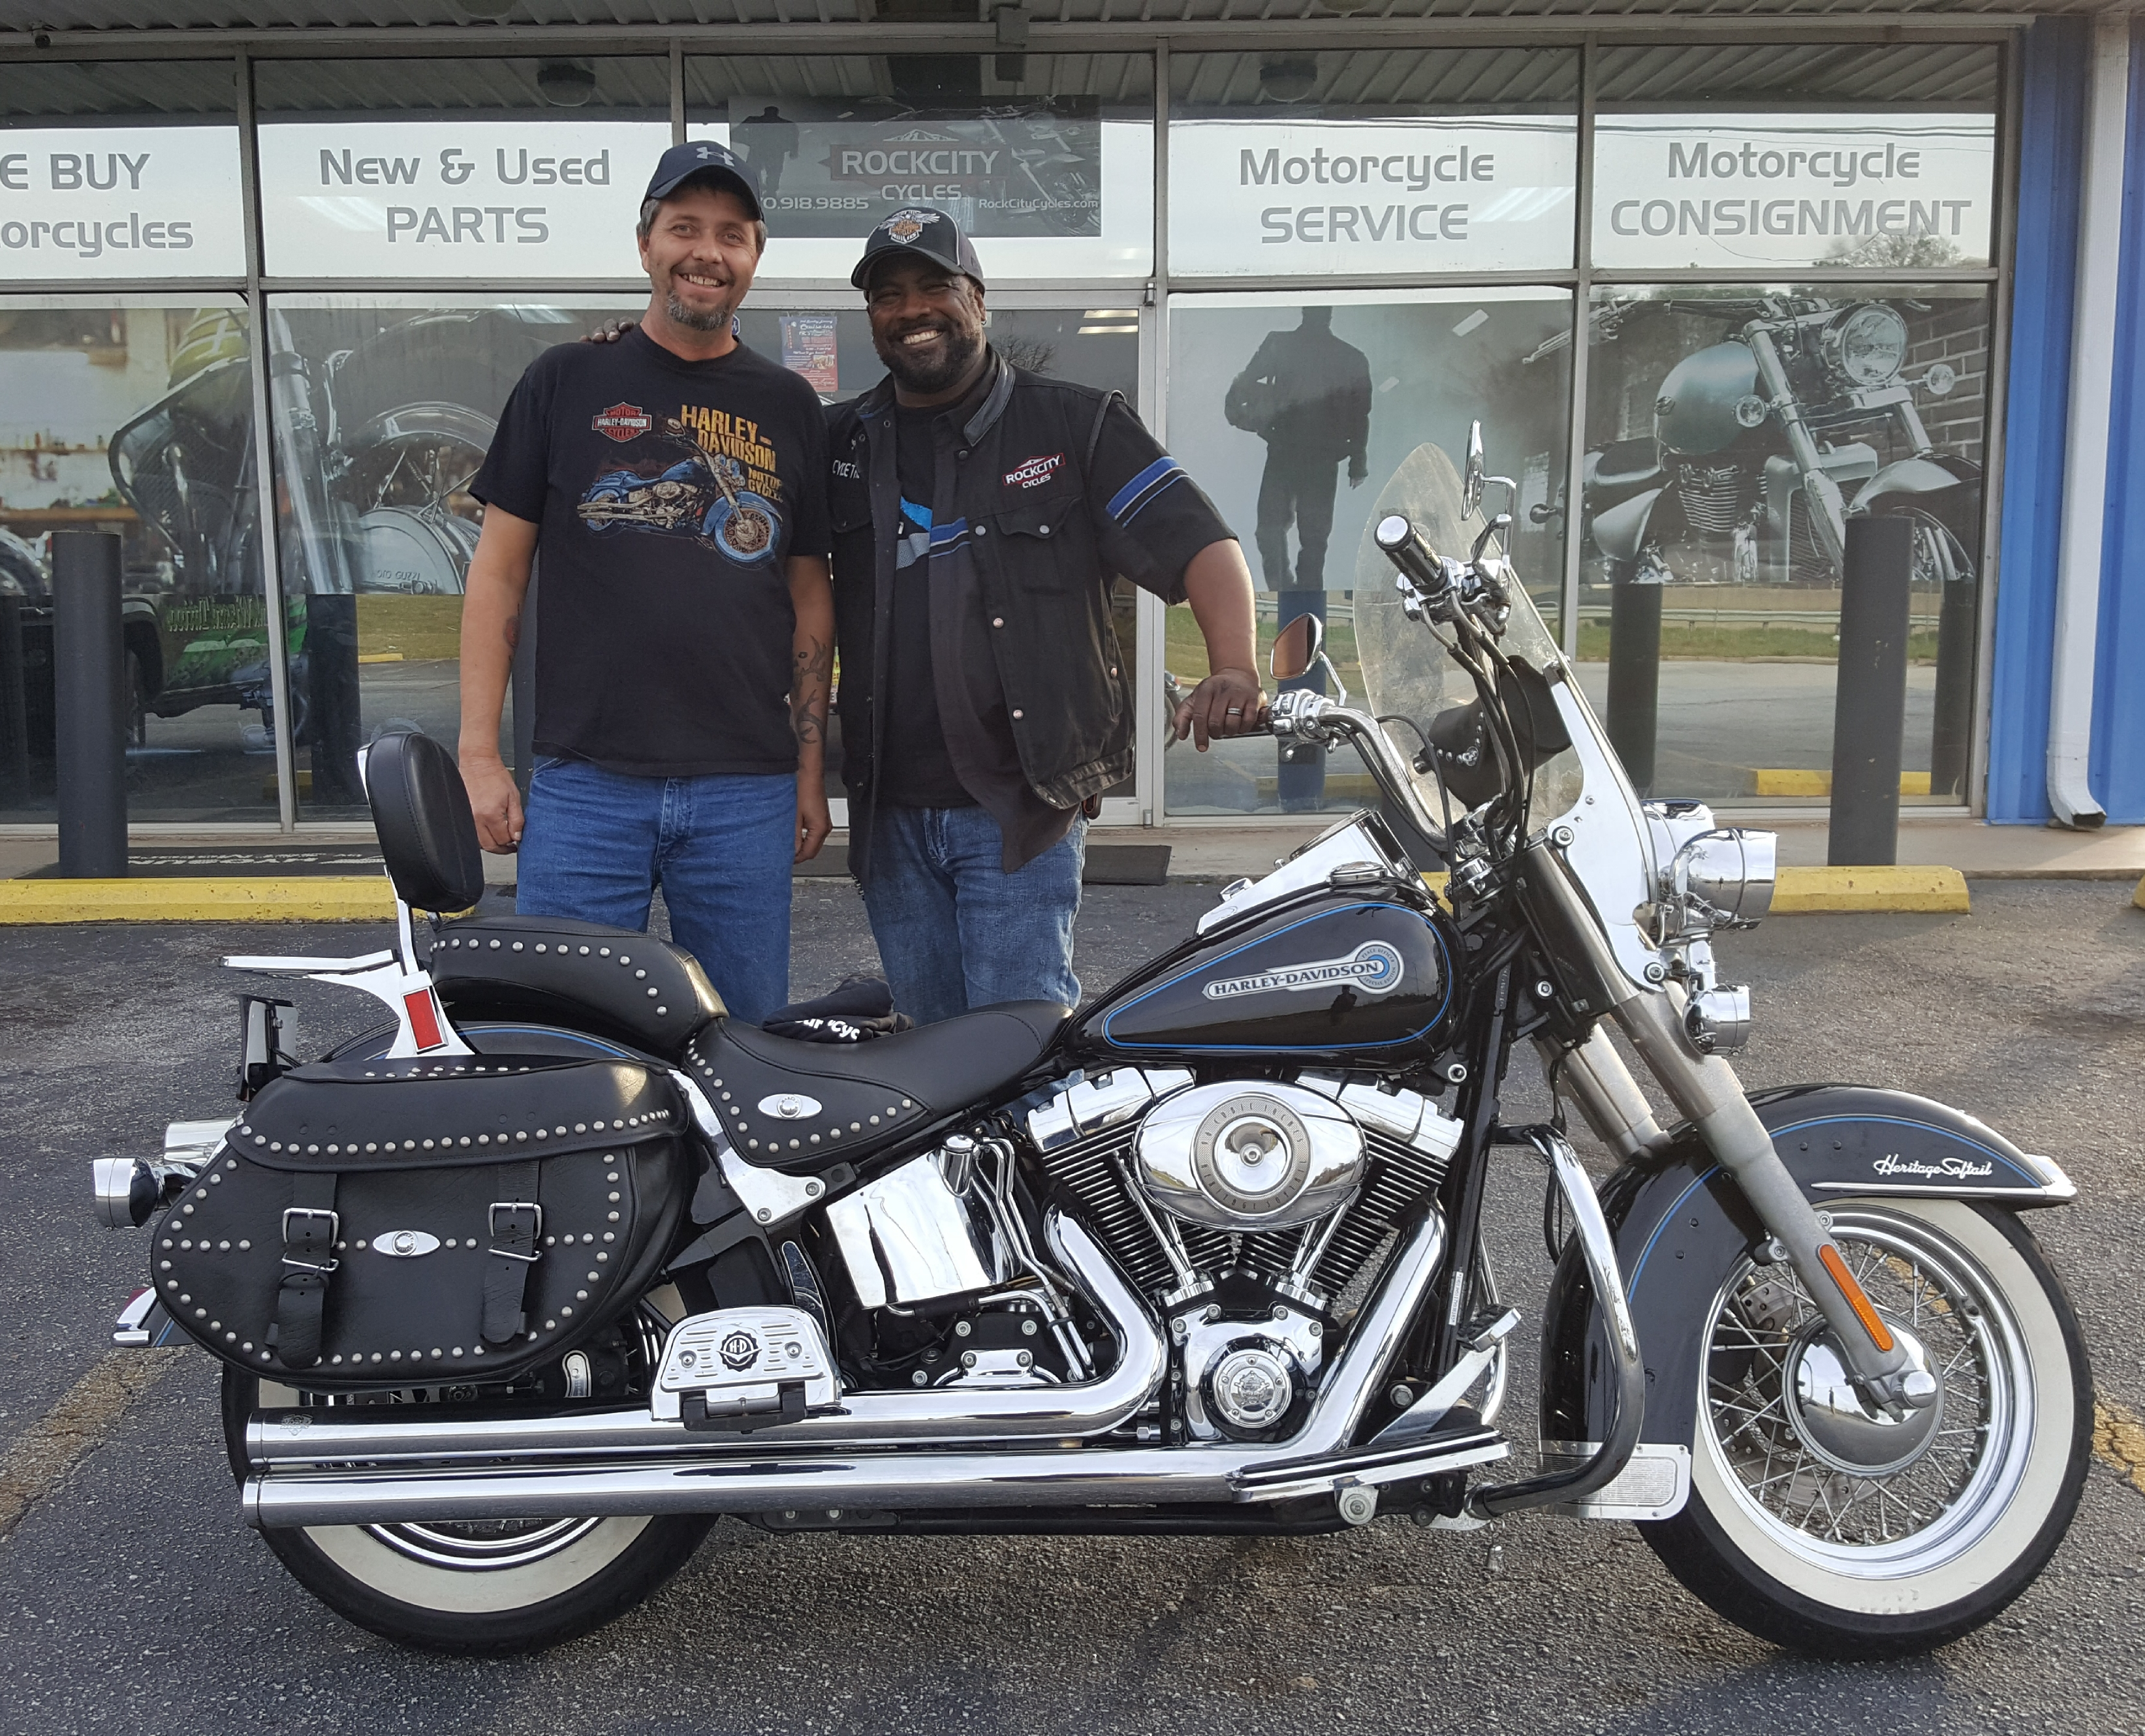 Billy B. with his 2007 Harley-Davidson FLSTC Heritage Softail Classic